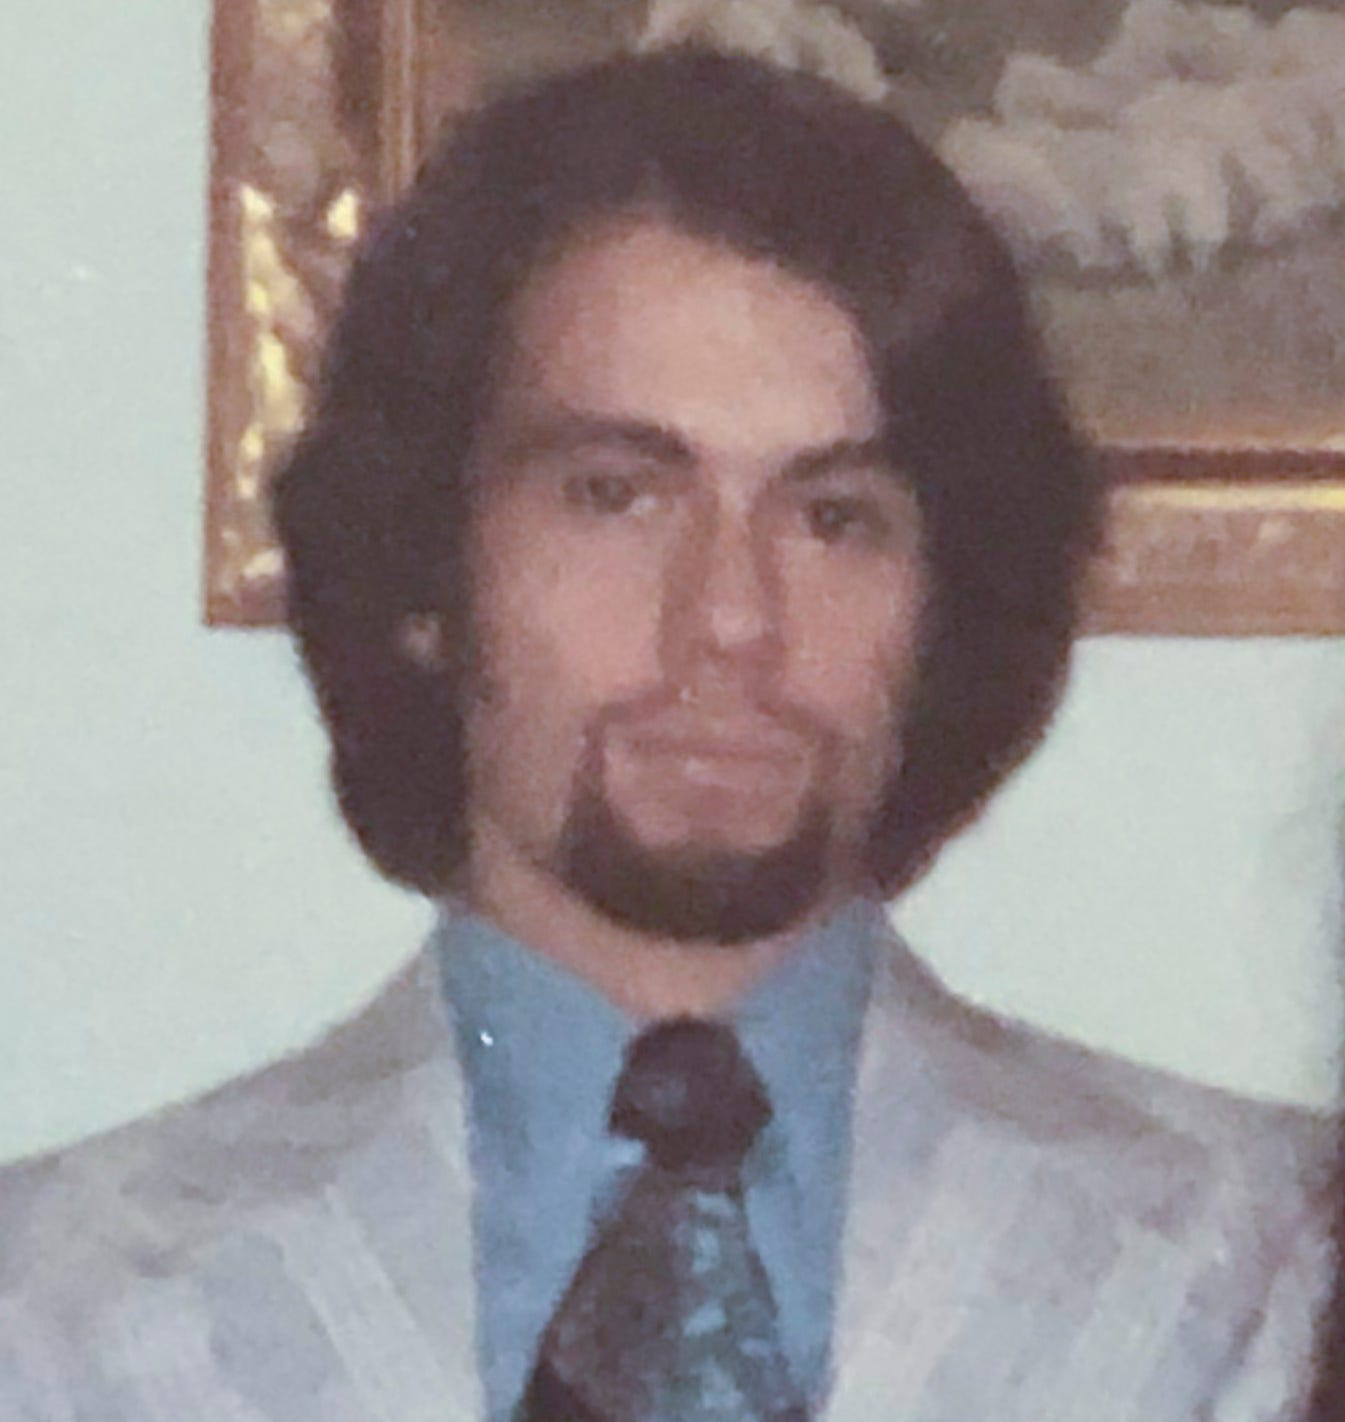 This photo of Robert Julian Stone was taken in 1971, the year he alleges he was sexually assaulted by Anderson.